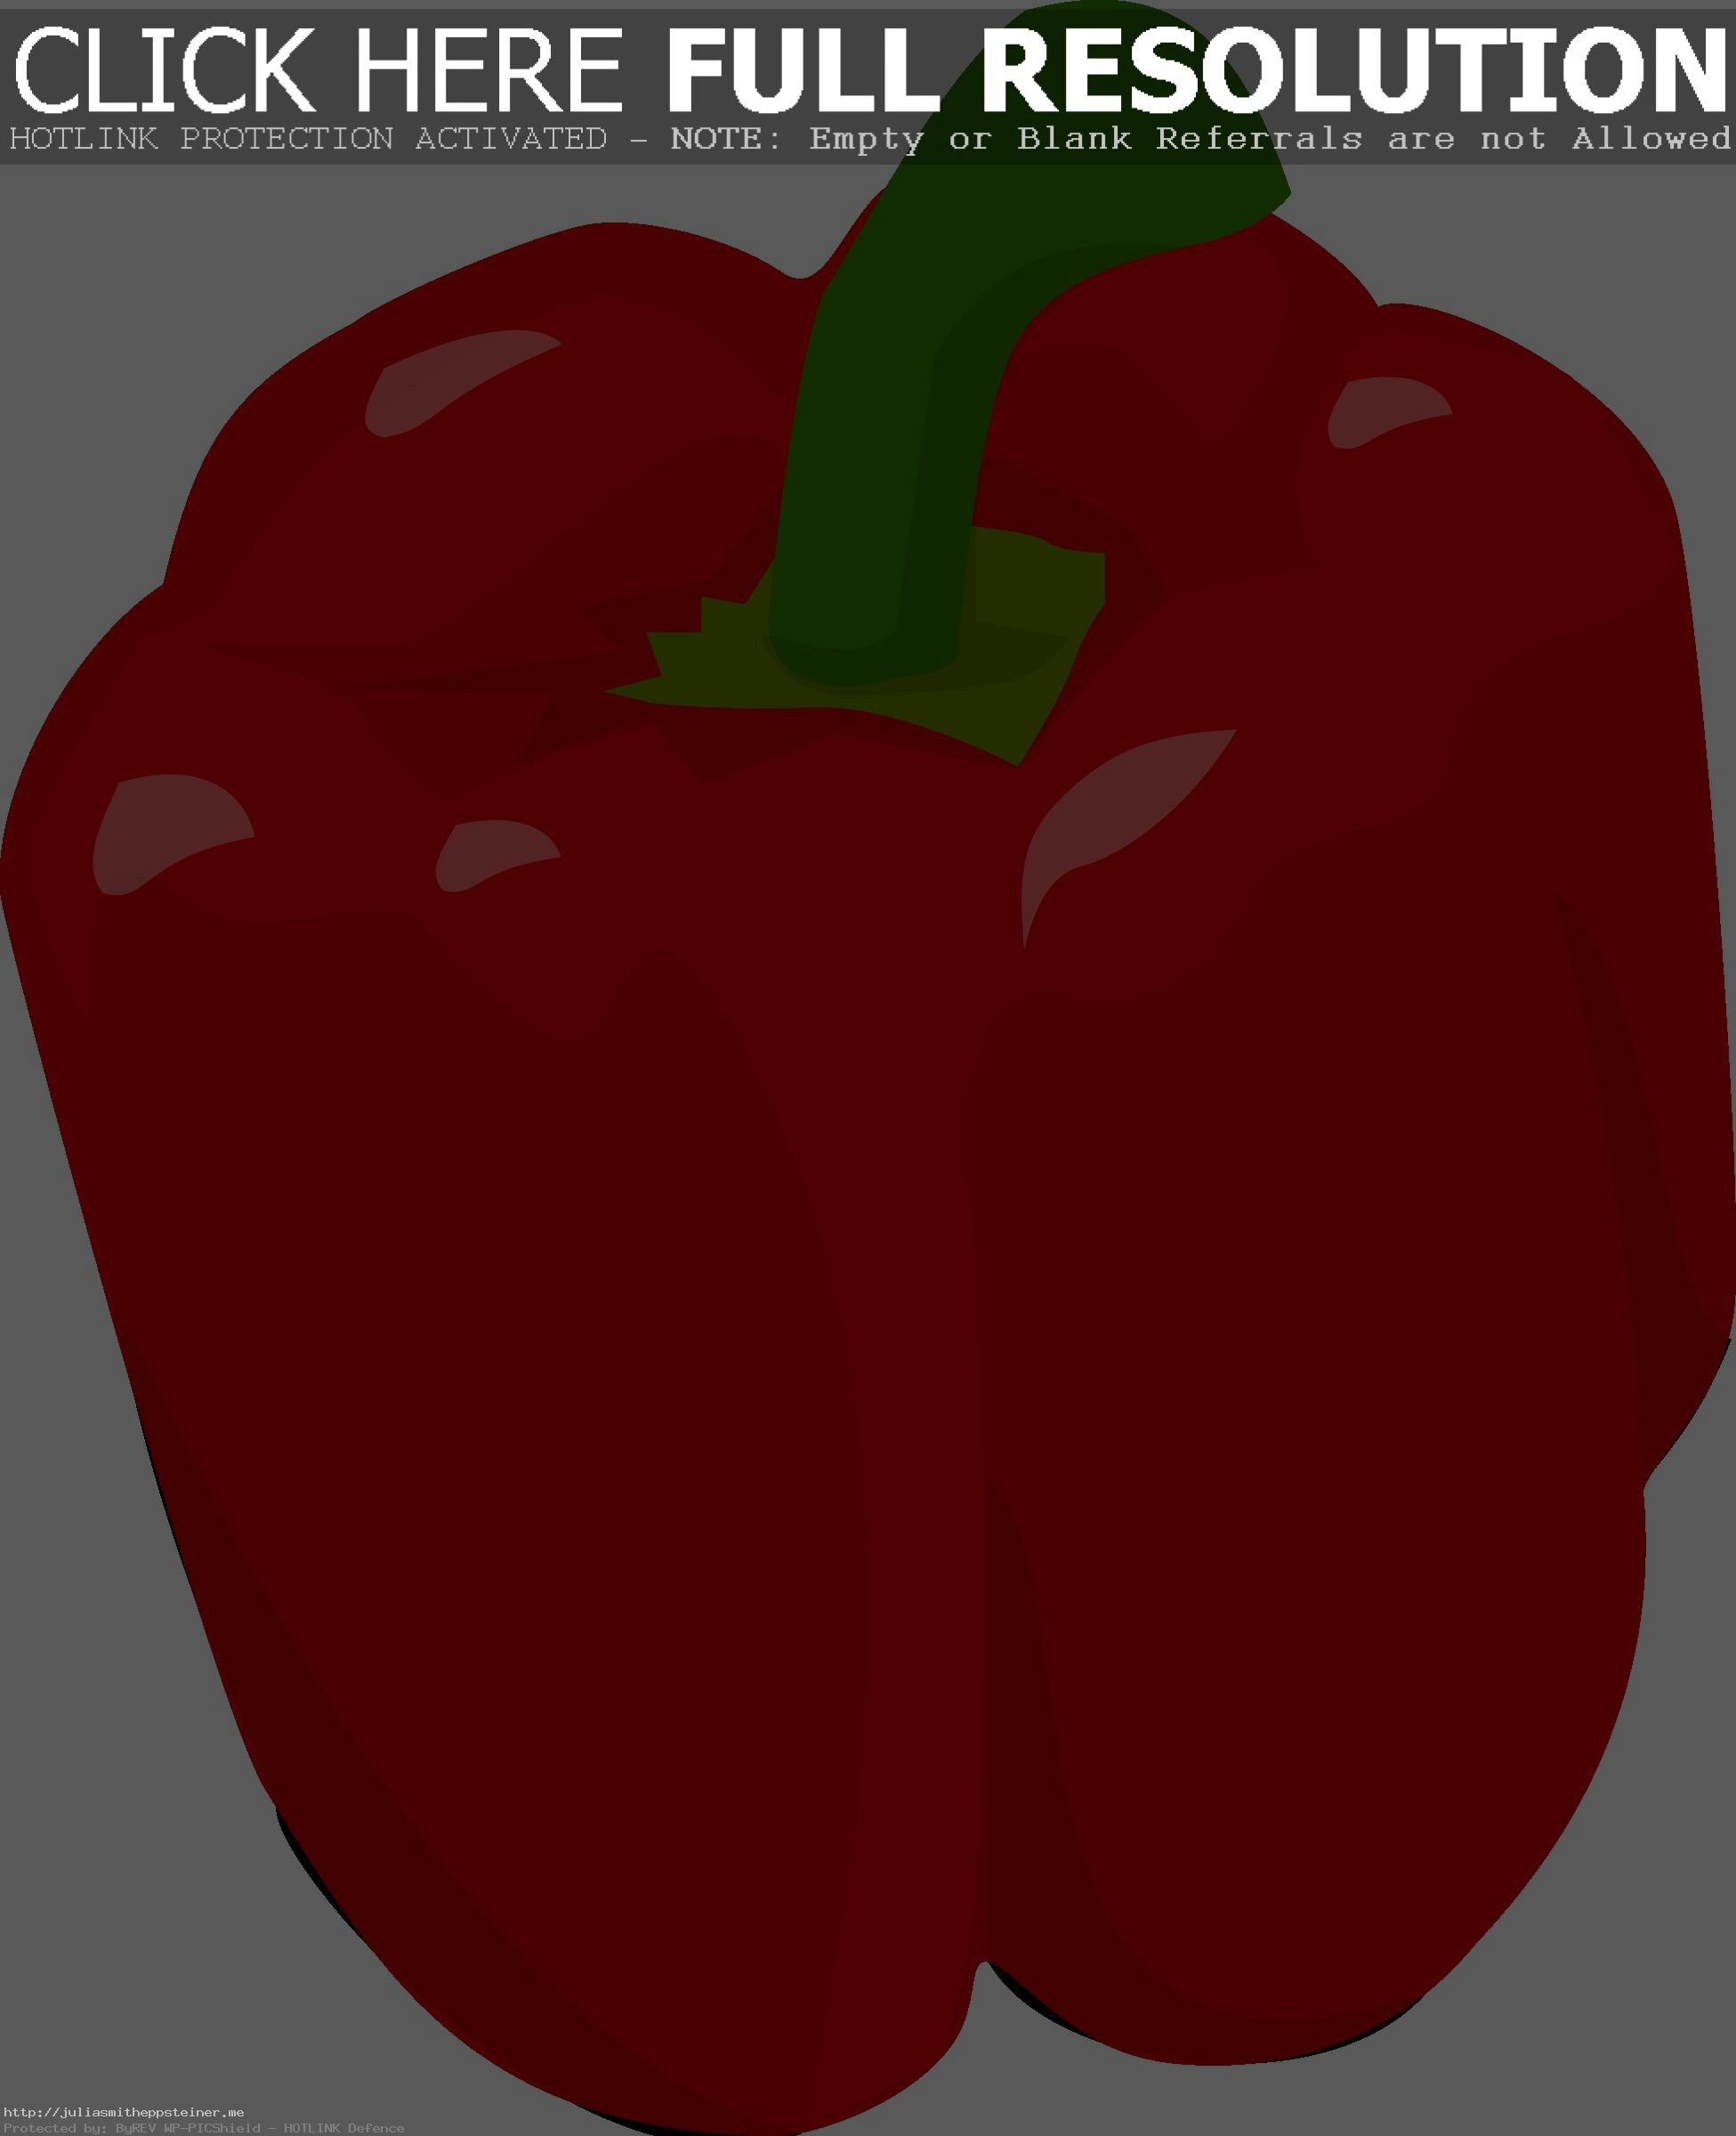 Clipart Bell Pepper ClipartLook.com